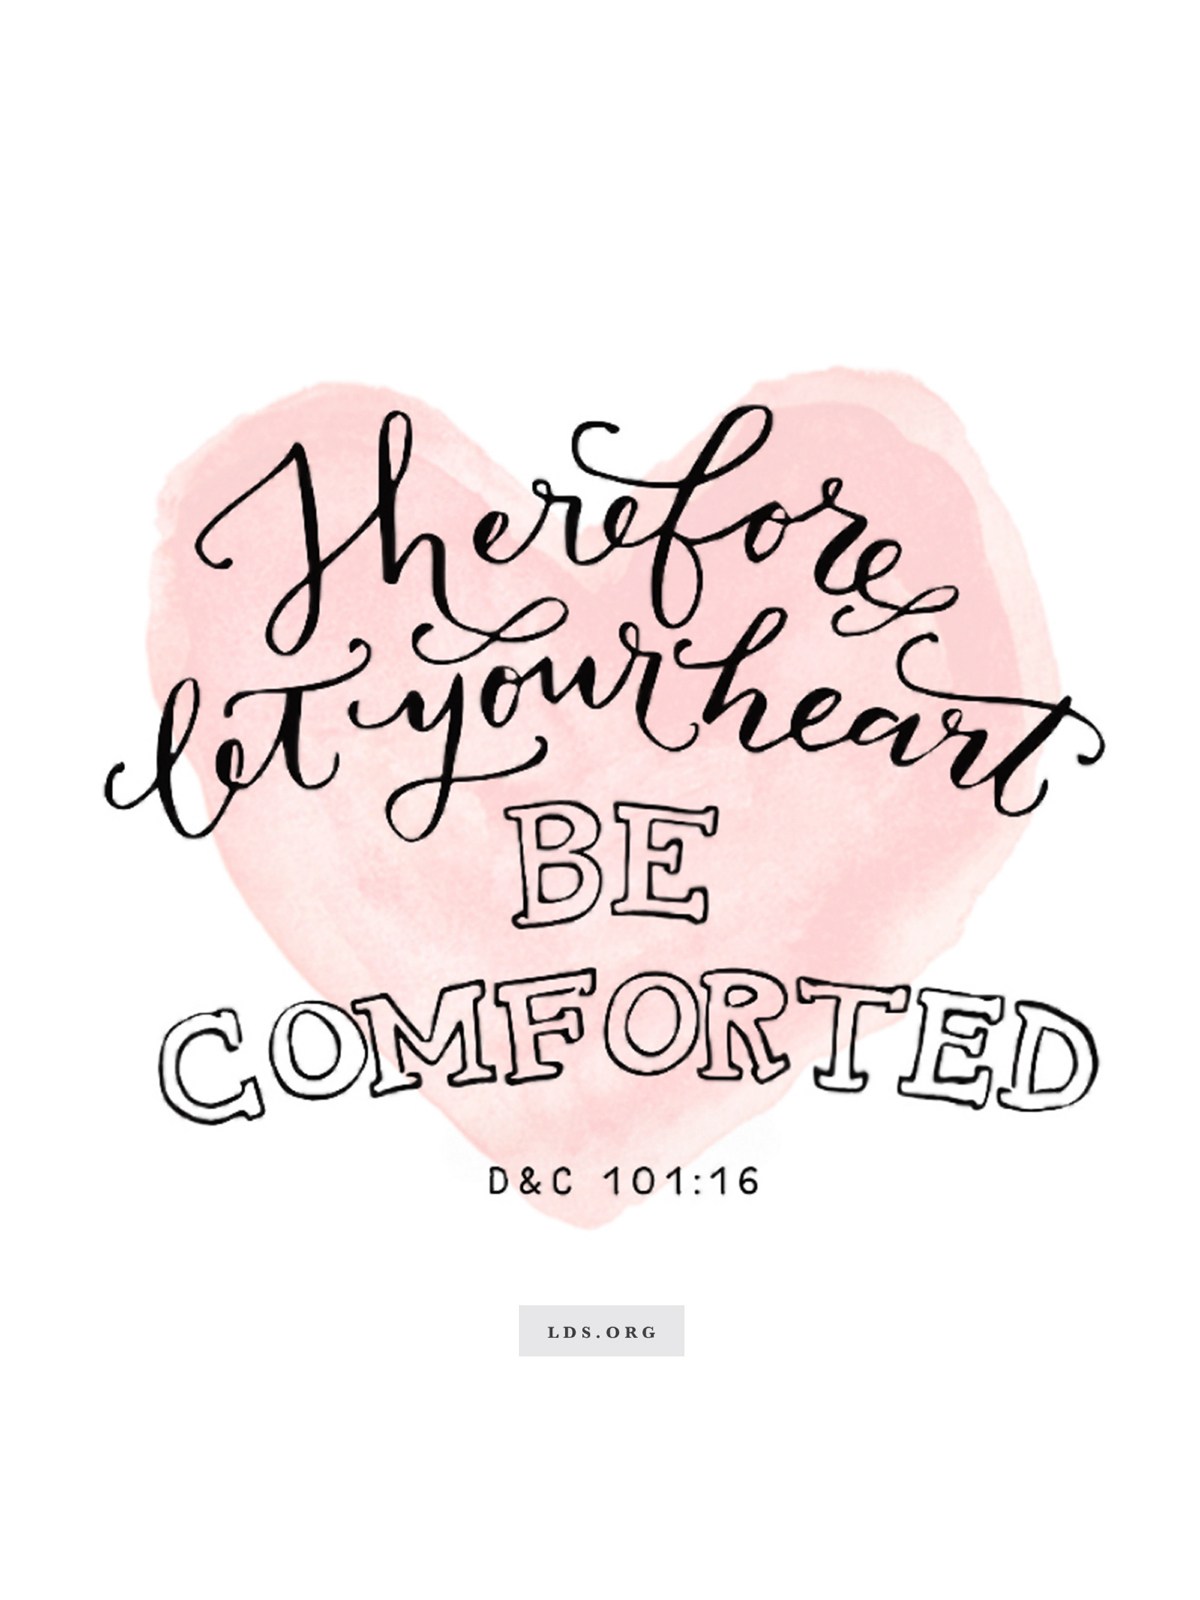 """""""""""Therefore let your heart be comforted.""""—D&C 101:16  Created by Jenae Nelson."""""""